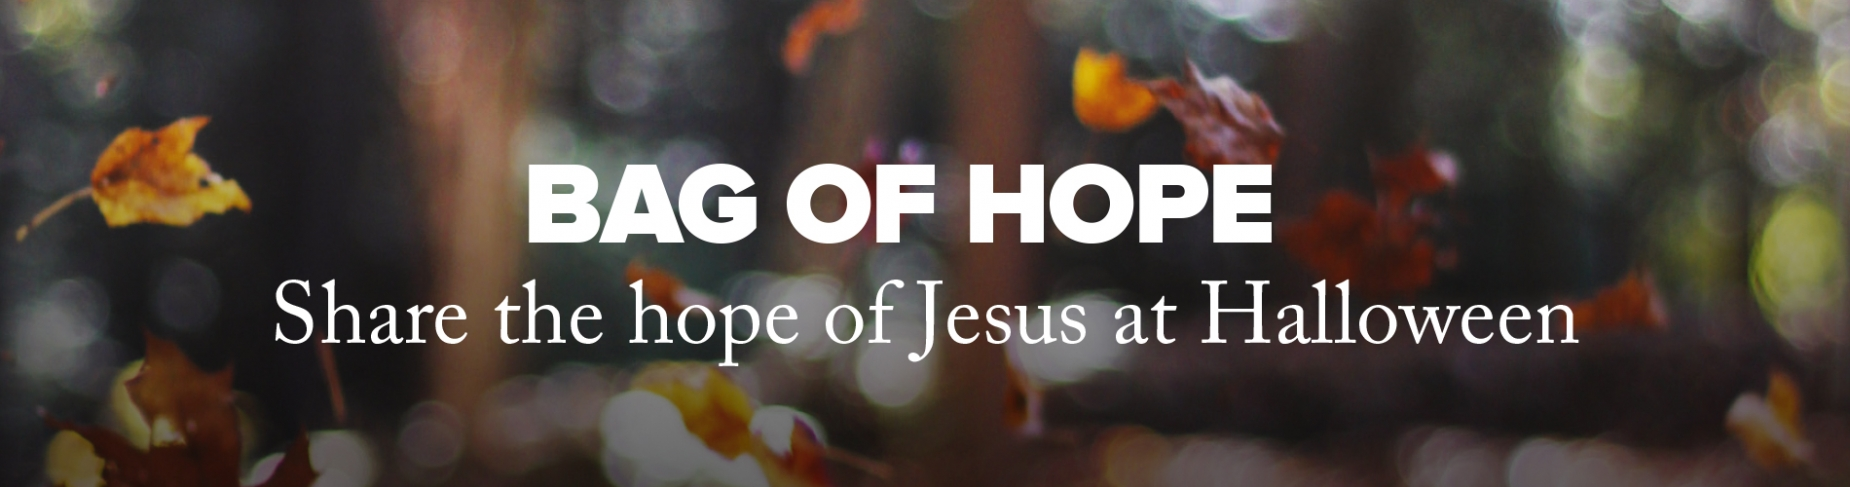 Bag of Hope - Share the hope of Jesus this Halloween